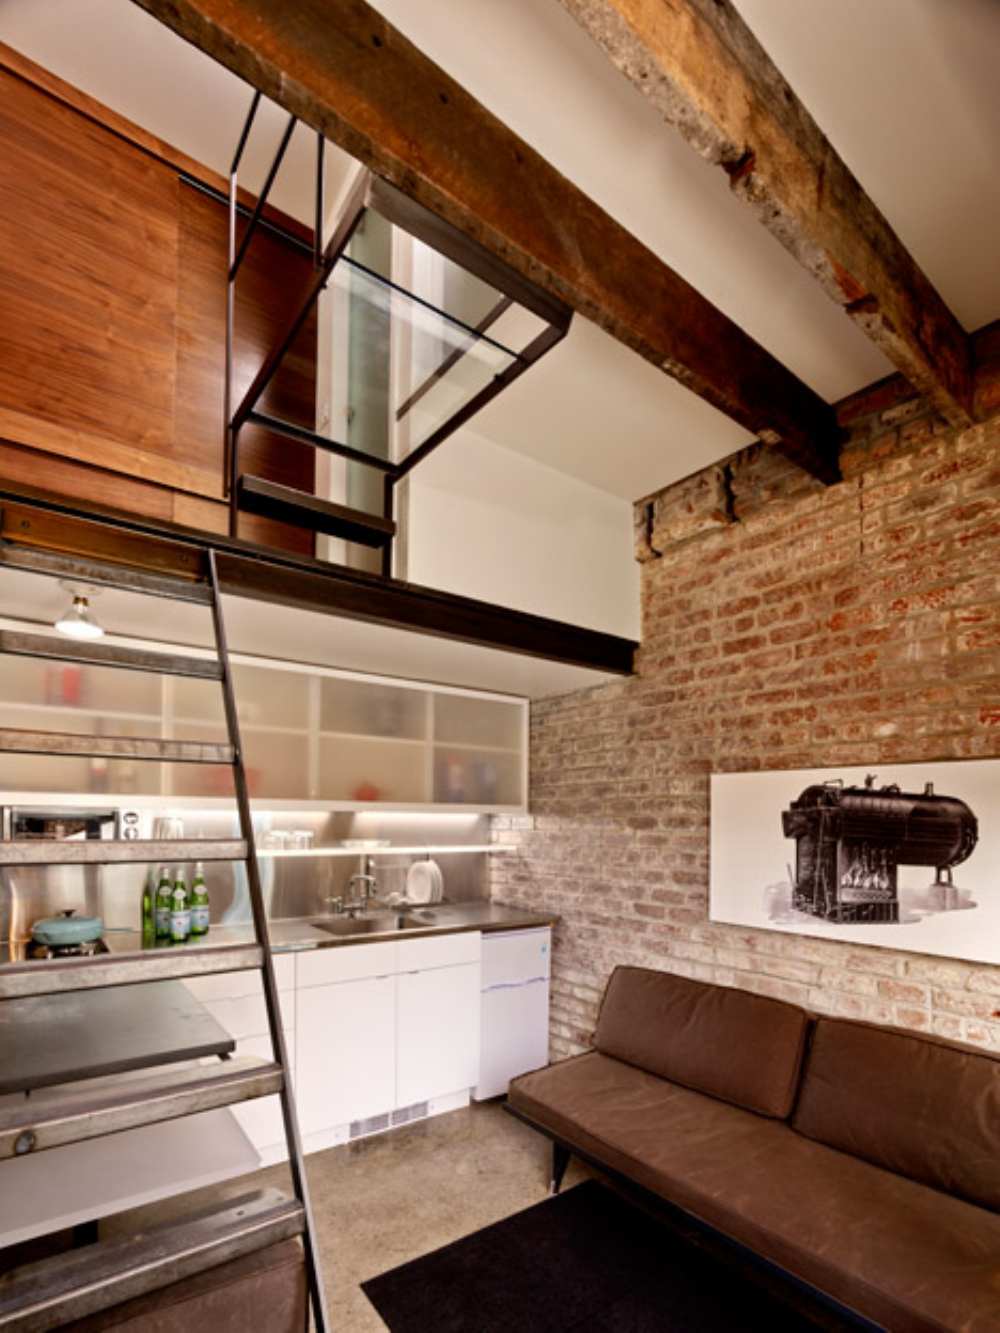 Modest Space becomes Impressive Guesthouse